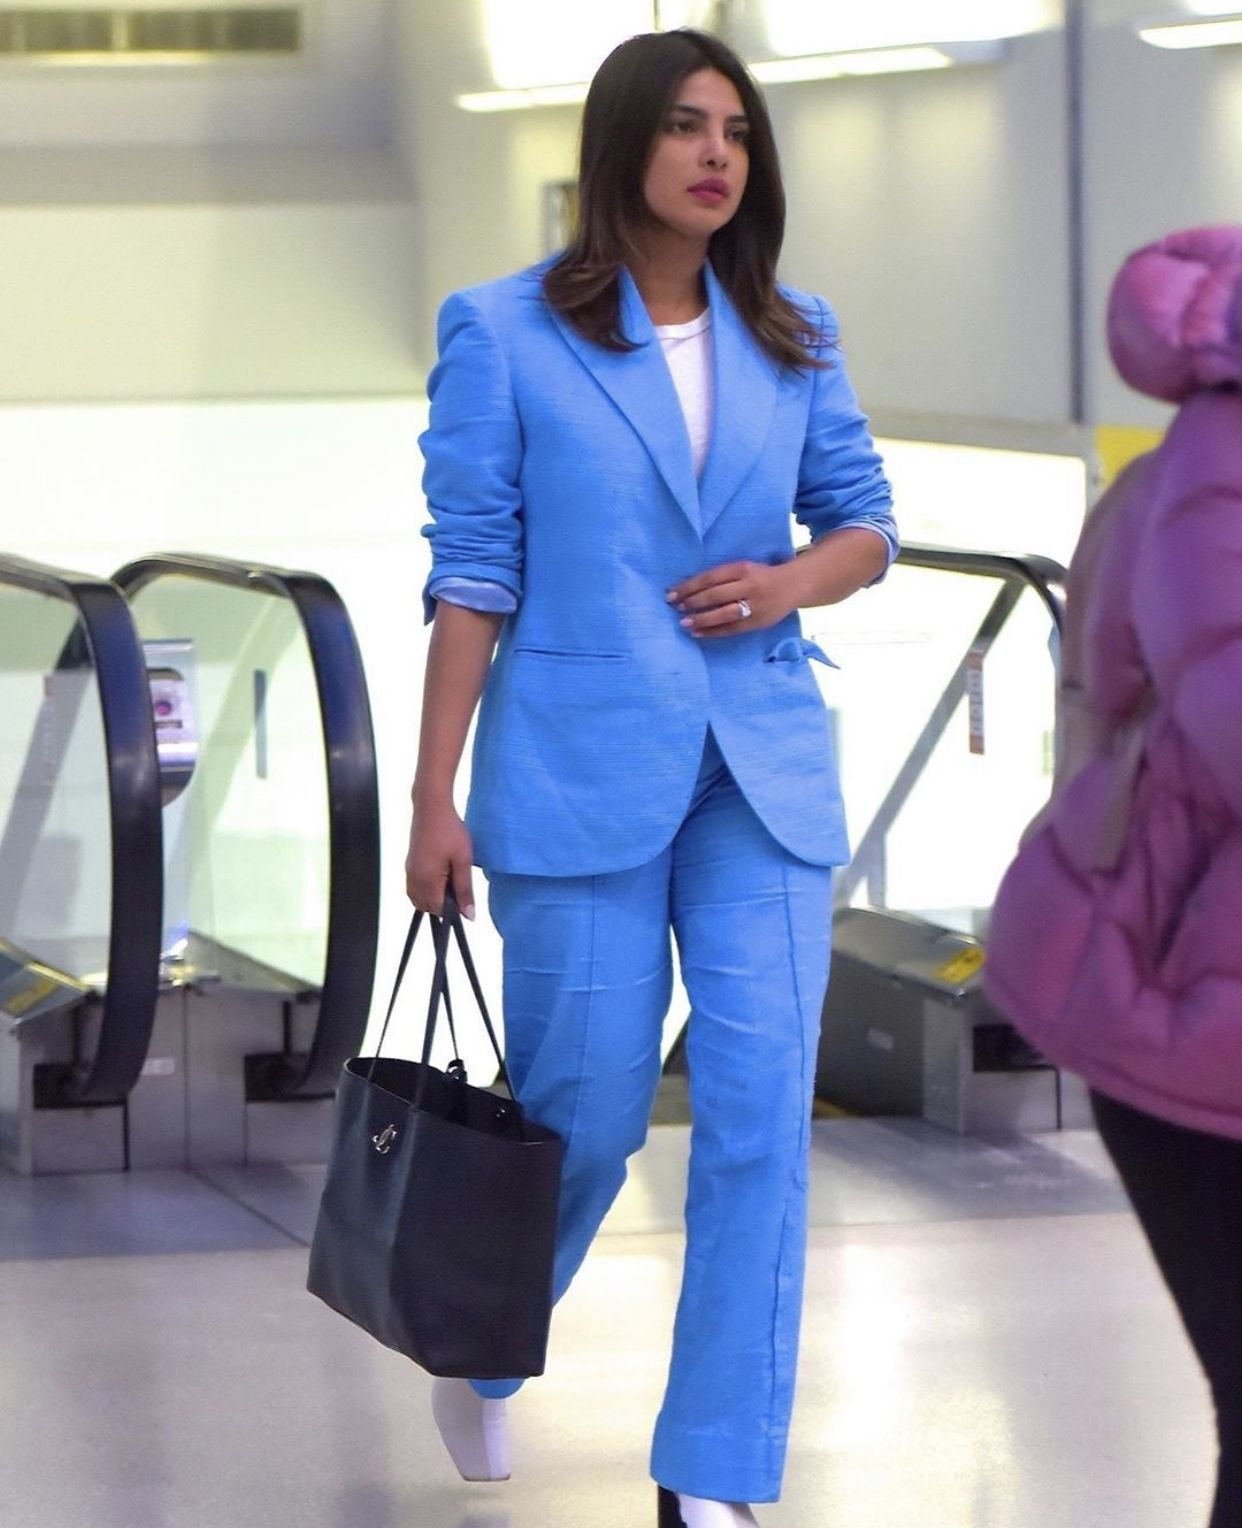 Pin by 퀸 ♏️ on Priyanka chopra ️ in 2020 Blue linen suit